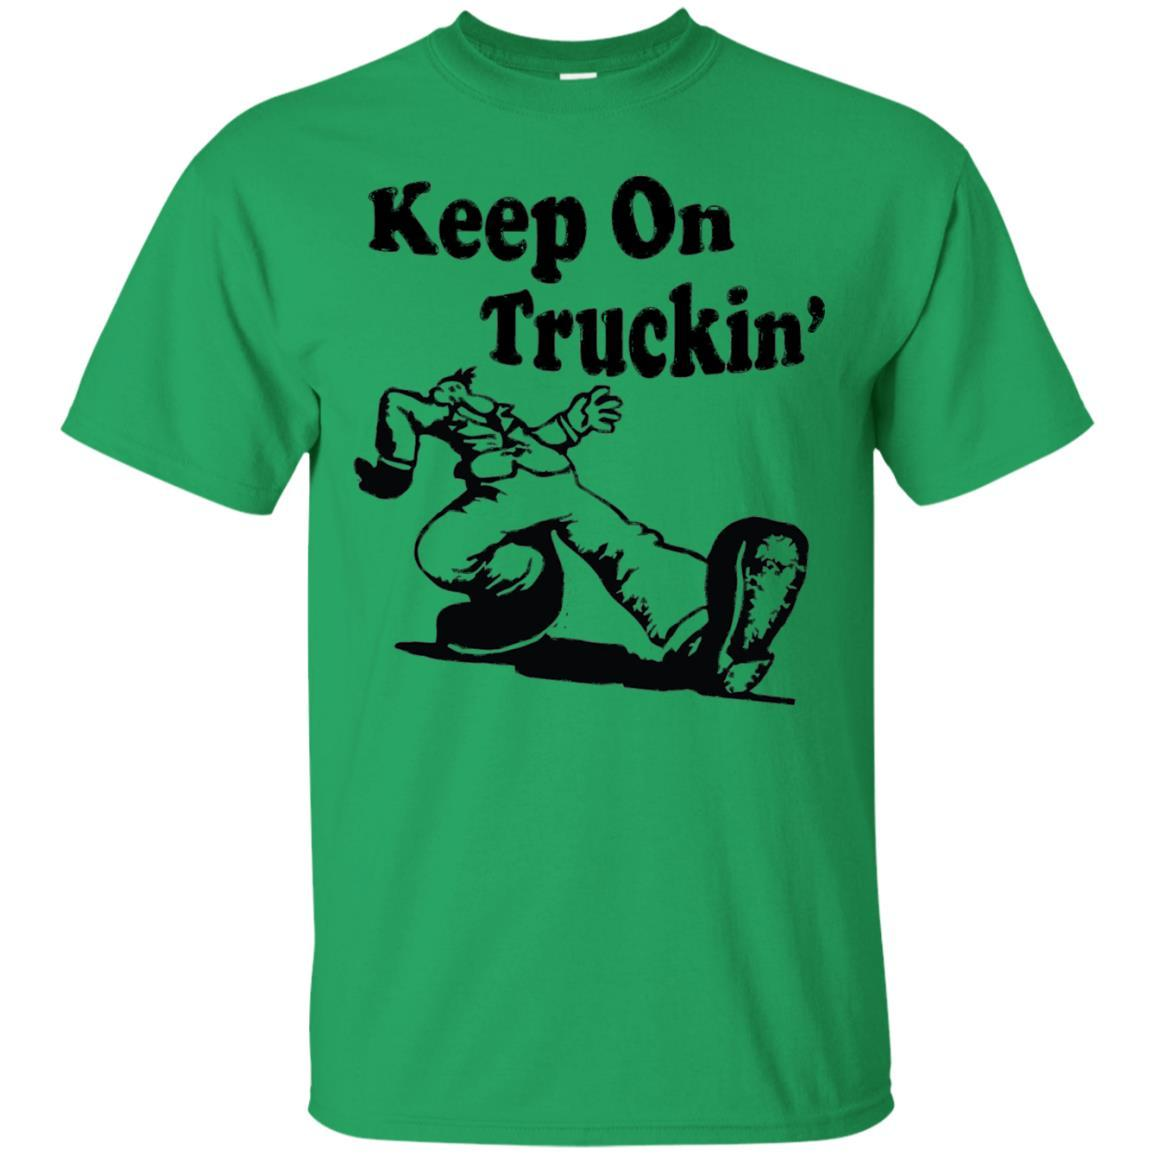 Iconic Keep On Truckin' Tshirt Irish Green / 5XL